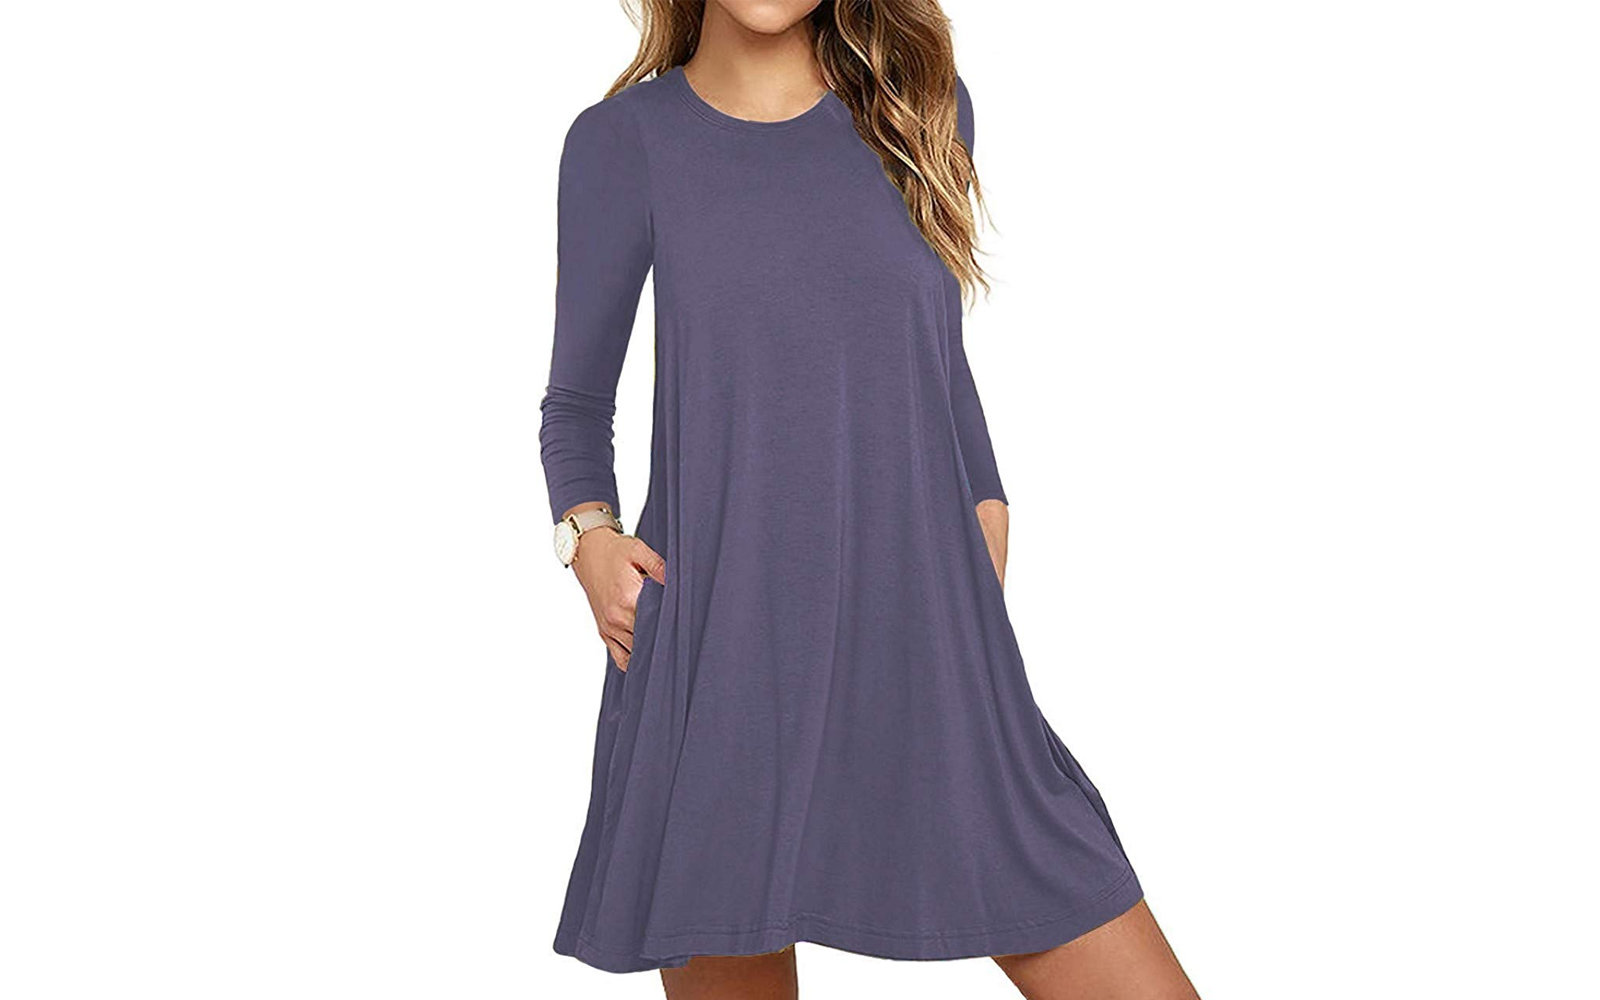 Unbranded Long-sleeve T-shirt Dress